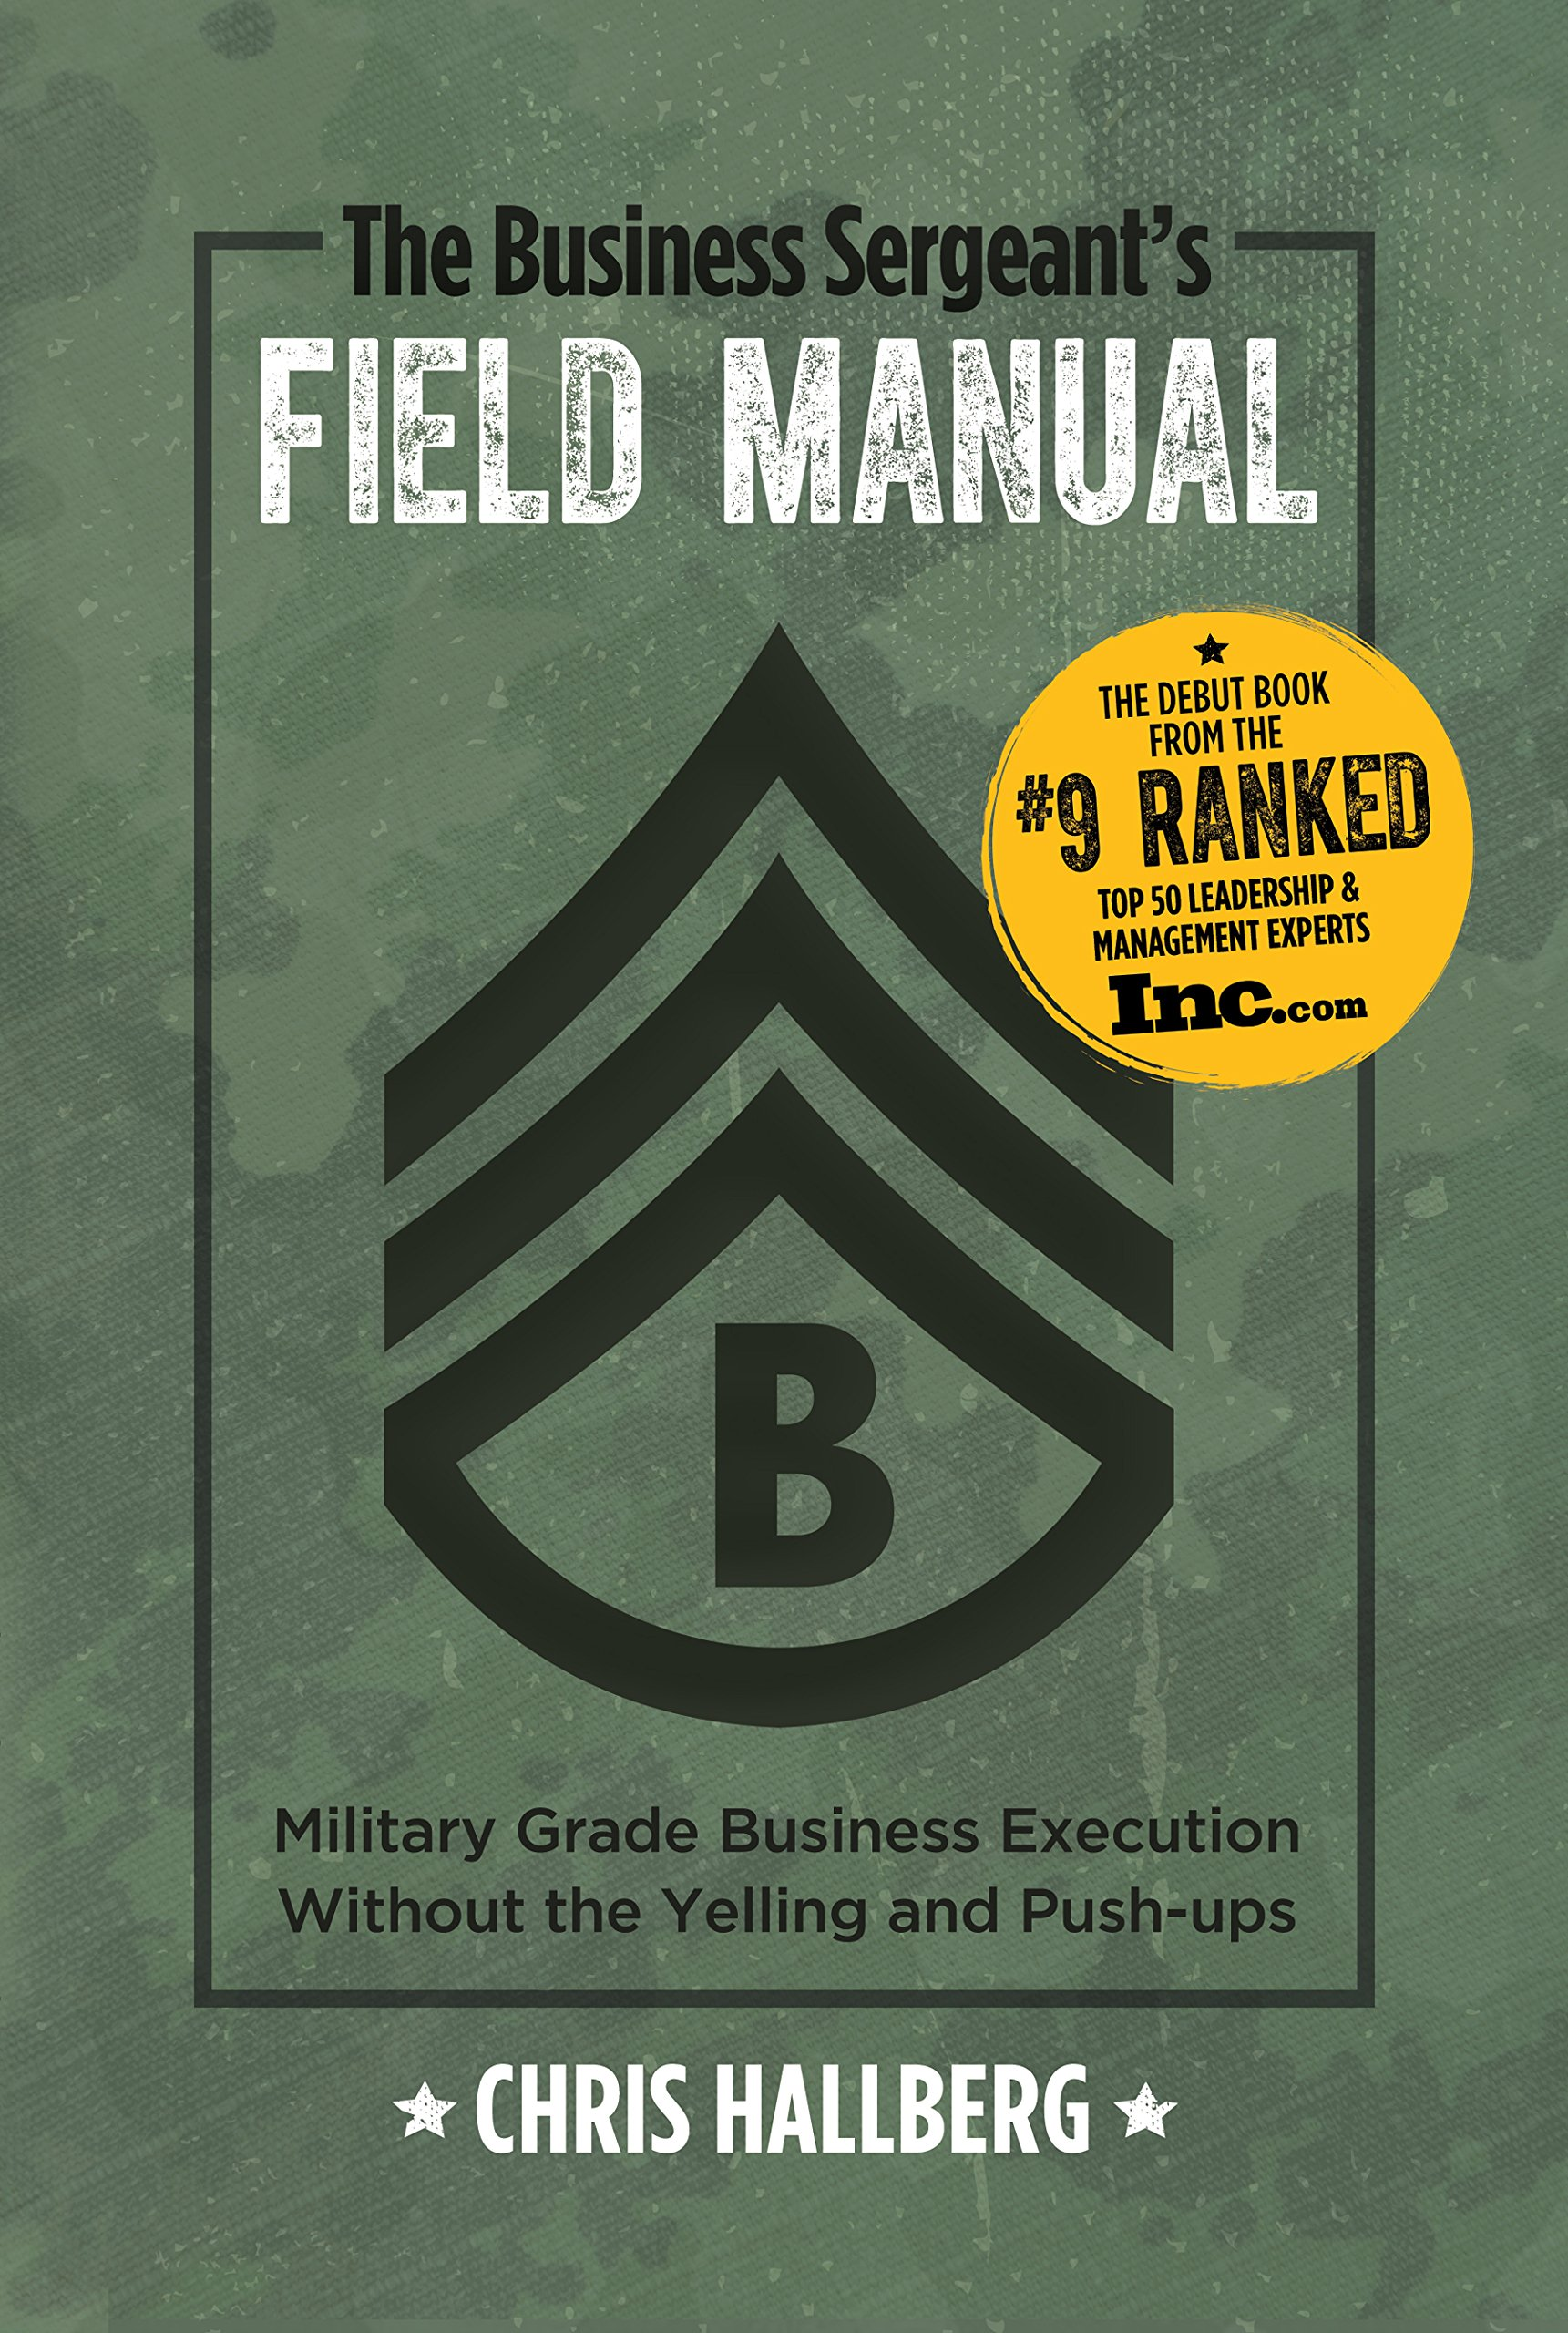 The Business Sergeant's Field Manual: Military Grade Business Execution  without the Yelling and Push-ups: Chris Hallberg: 9780999101803:  Amazon.com: Books